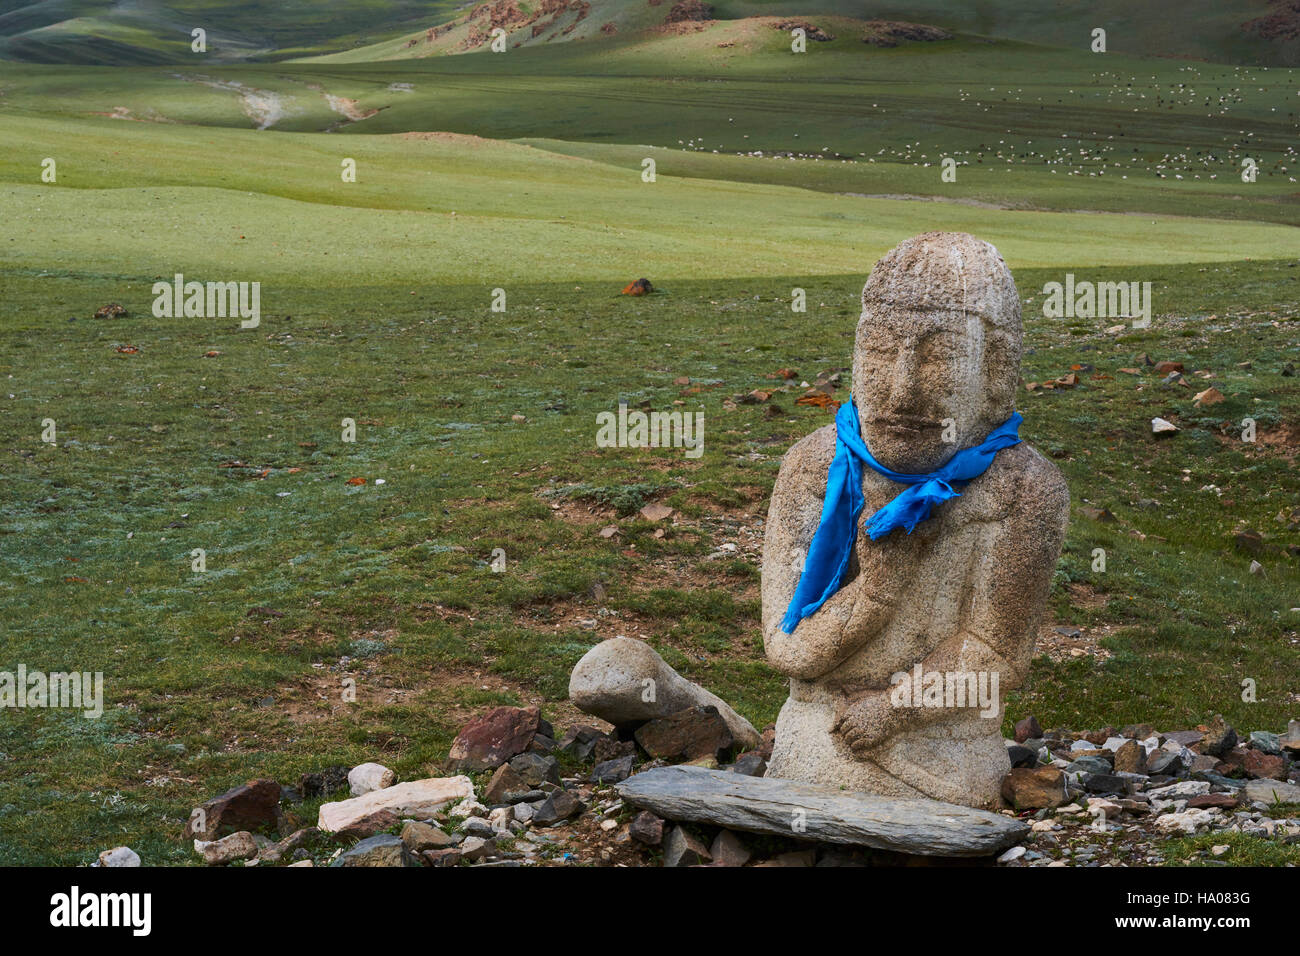 Mongolia, Gobi-Altay province, western Mongolia, stele in human form, IV-VIII century - Stock Image